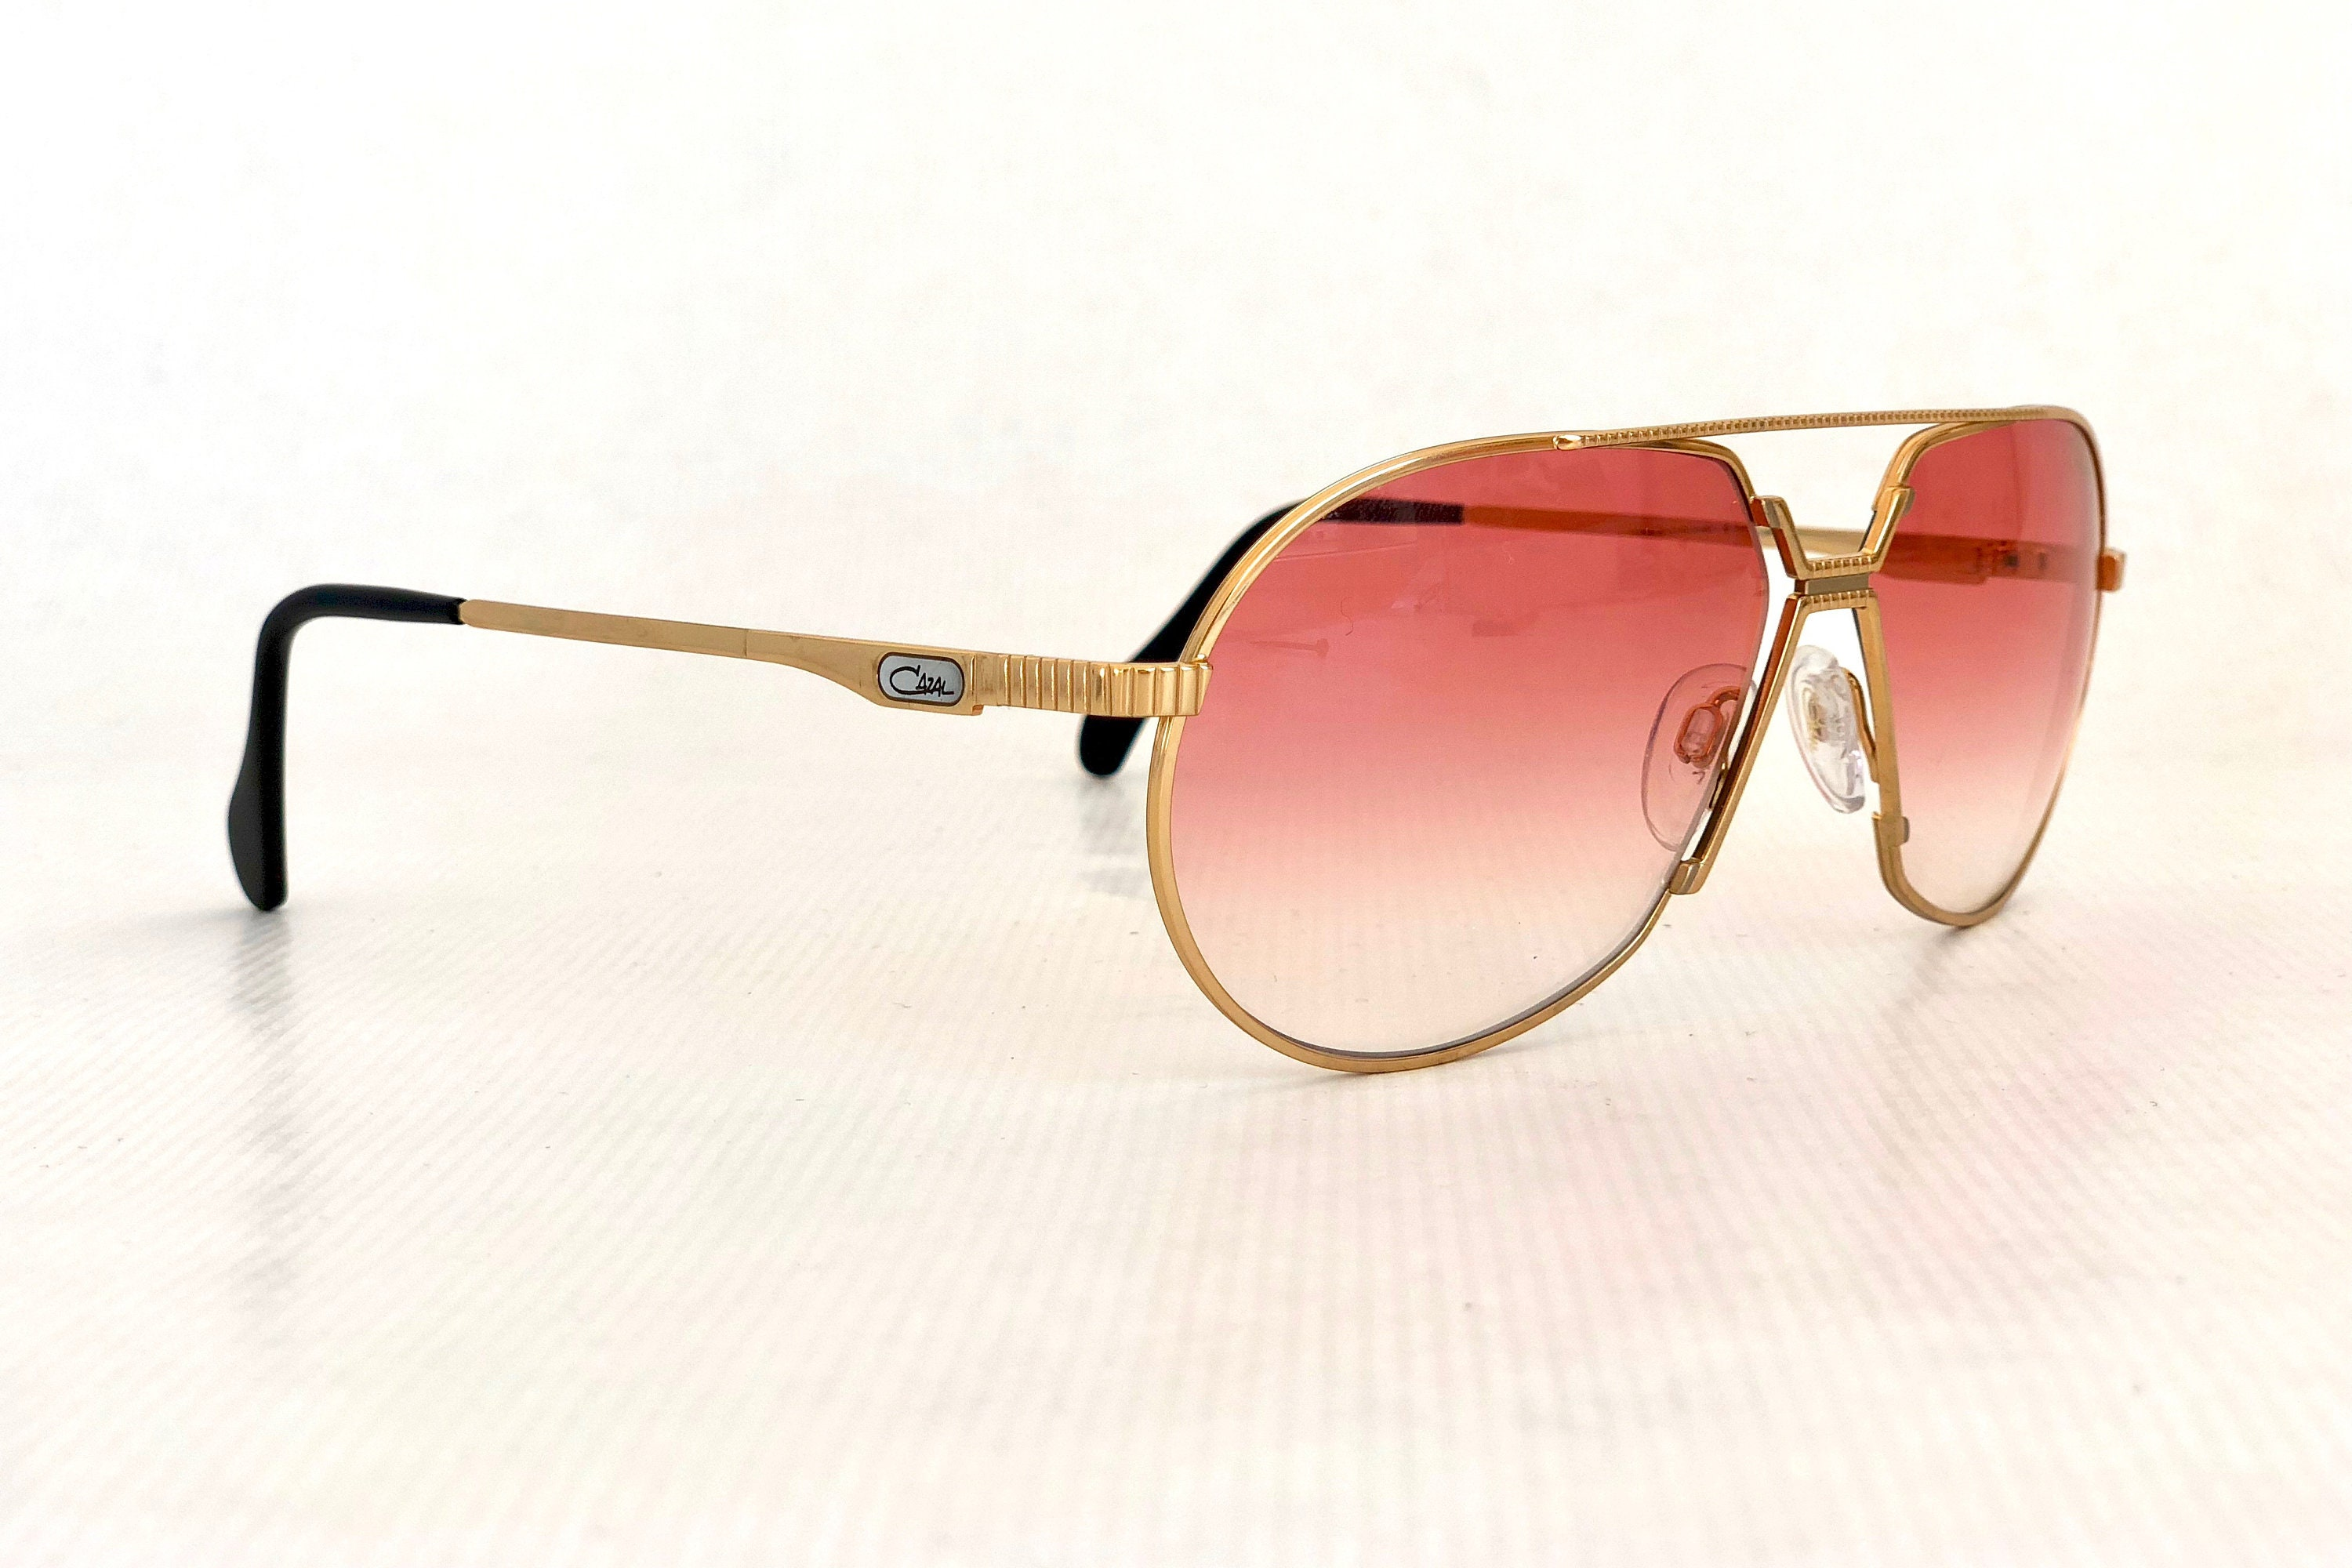 9090c83e576 Cazal 968 Flashbacks Limited Edition Sunglasses - Full Set with 5 Lenses -  New and Unworn